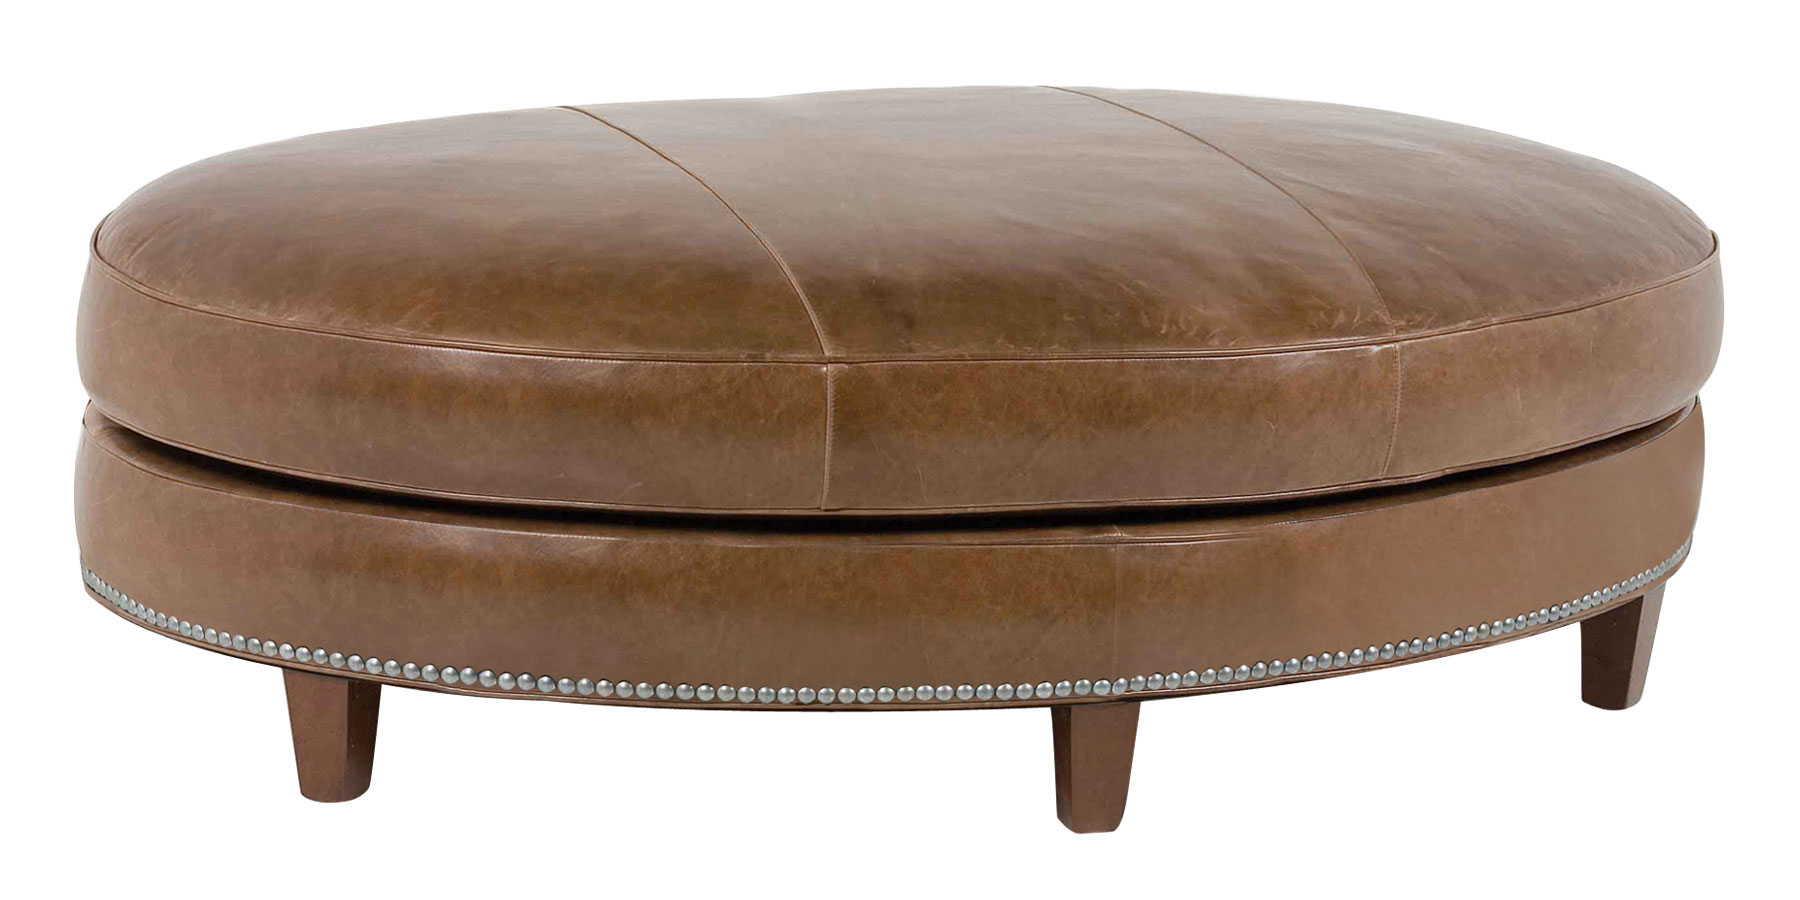 large oval leather coffee table with nails club furniture. Black Bedroom Furniture Sets. Home Design Ideas